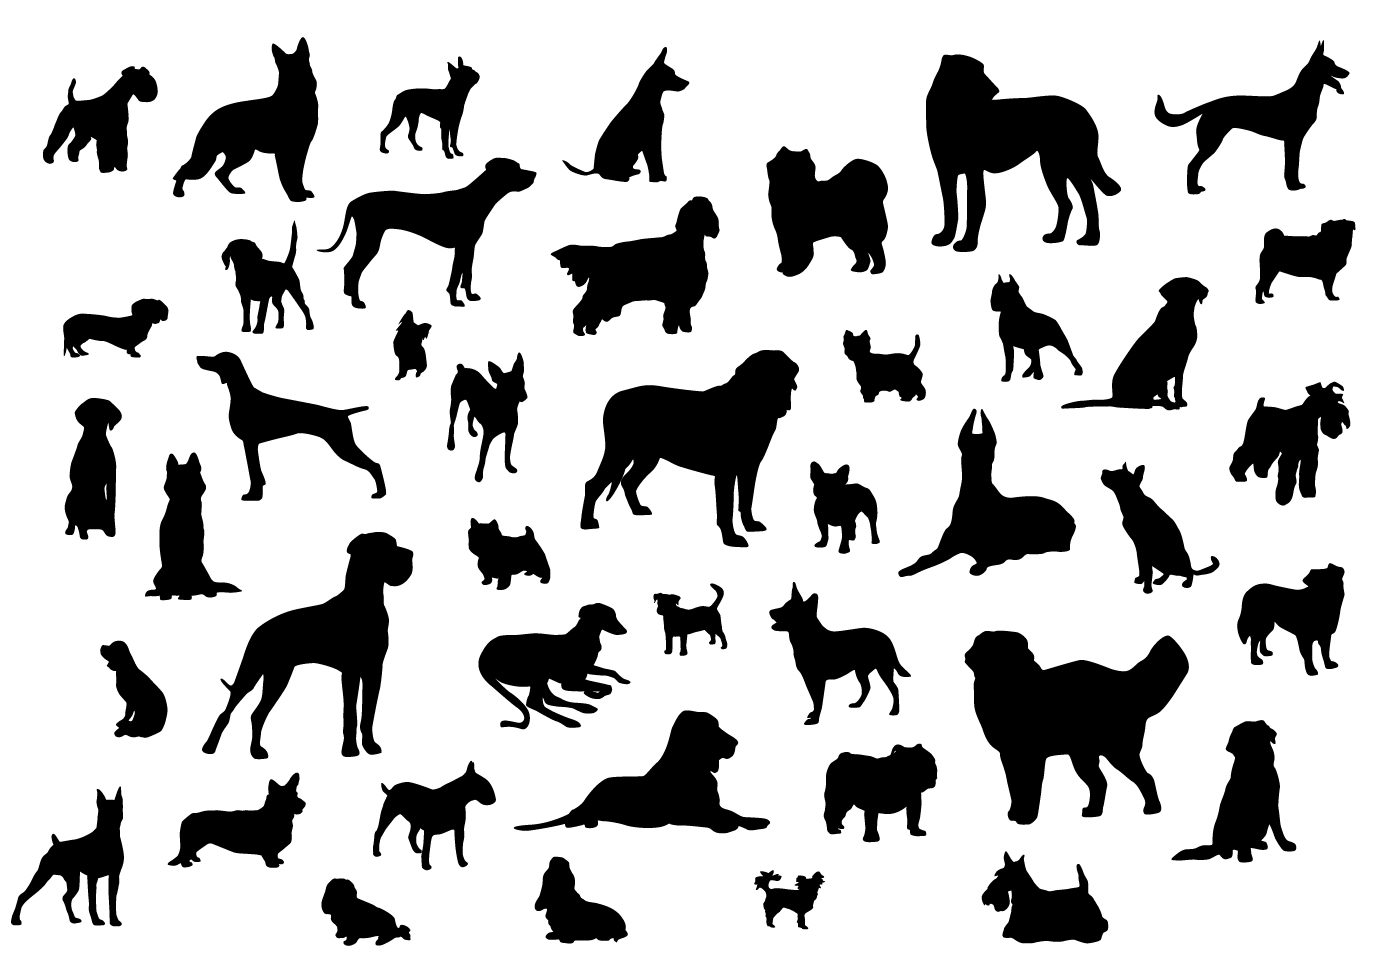 Dog Silhouettes - Download Free Vector Art, Stock Graphics & Images